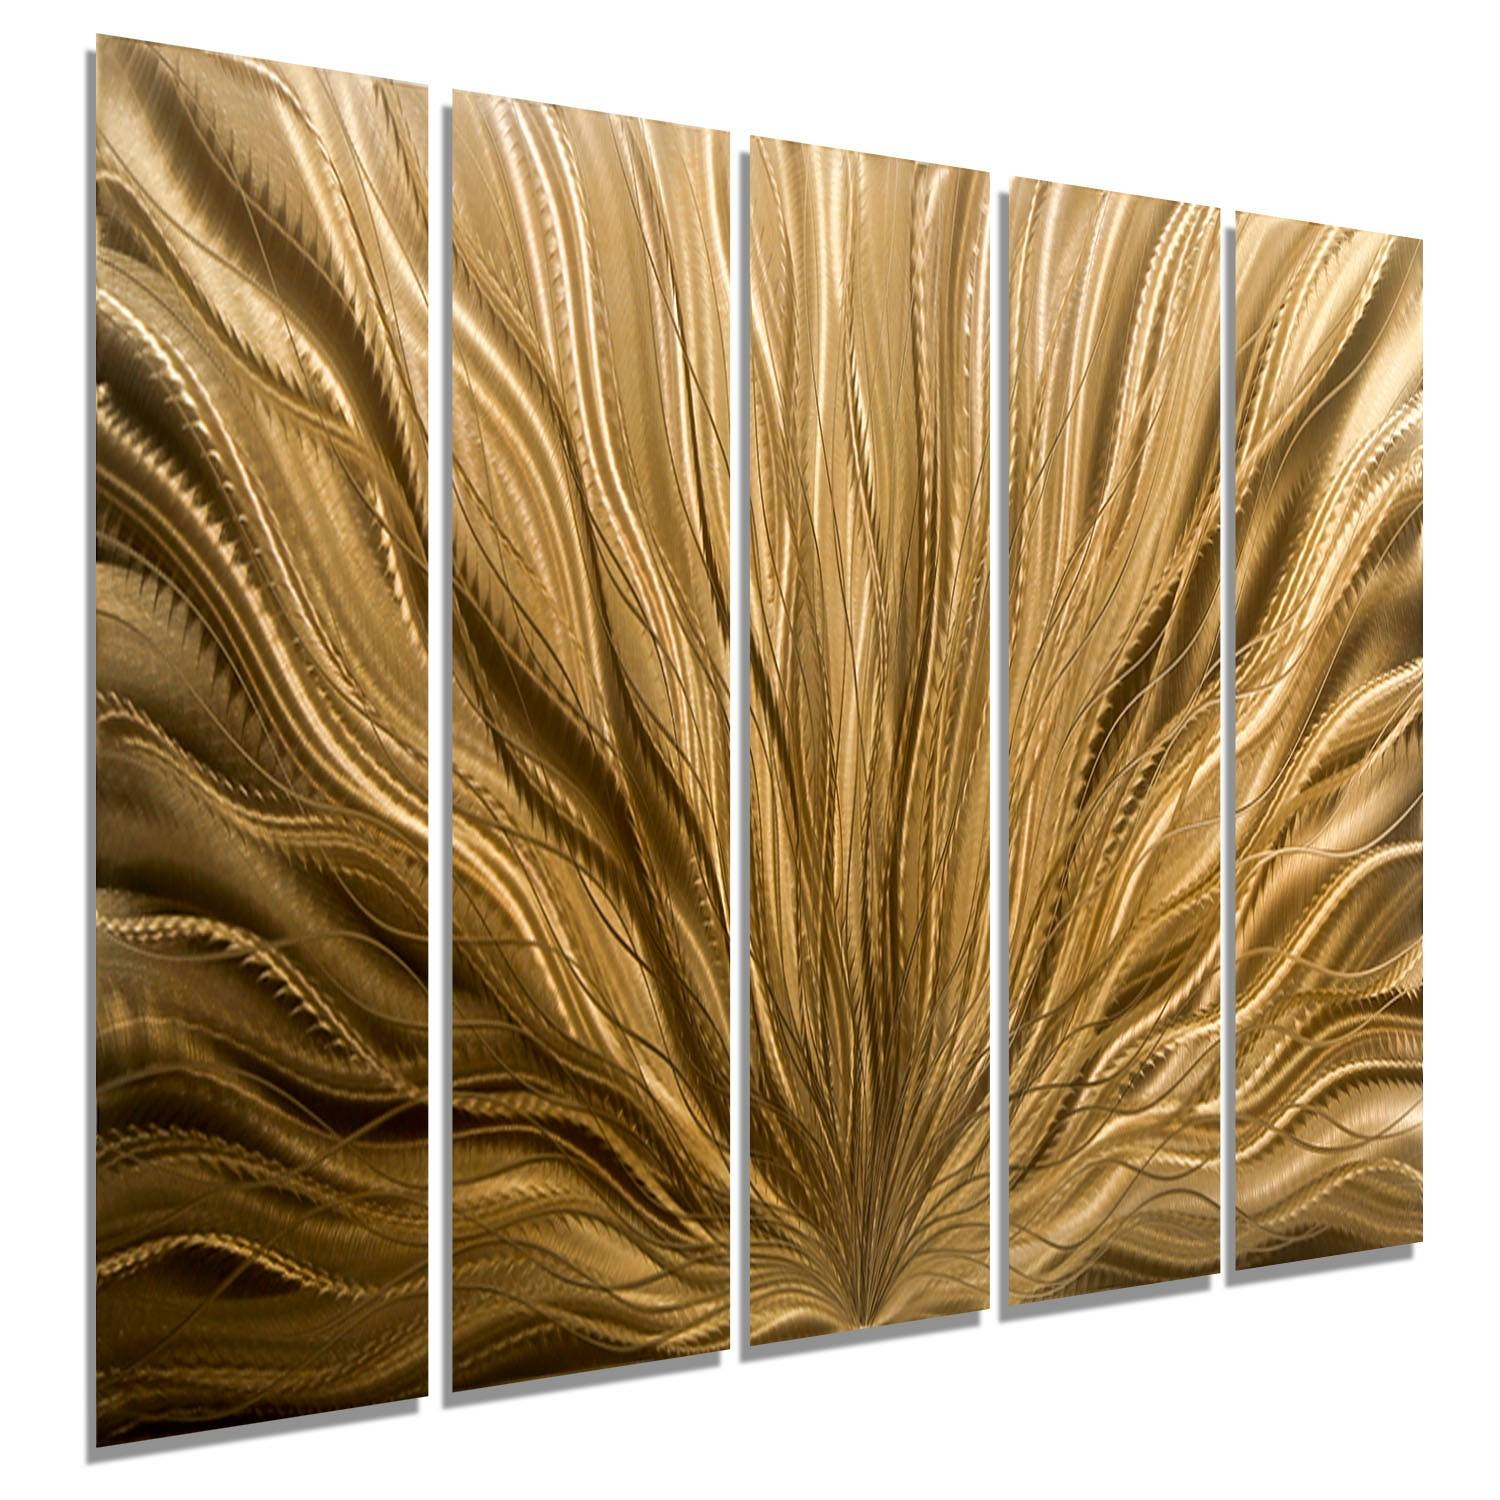 Copper Plumage Epic – Extra Large Light Copper Abstract Metal Wall With Regard To Current Large Copper Wall Art (View 18 of 30)